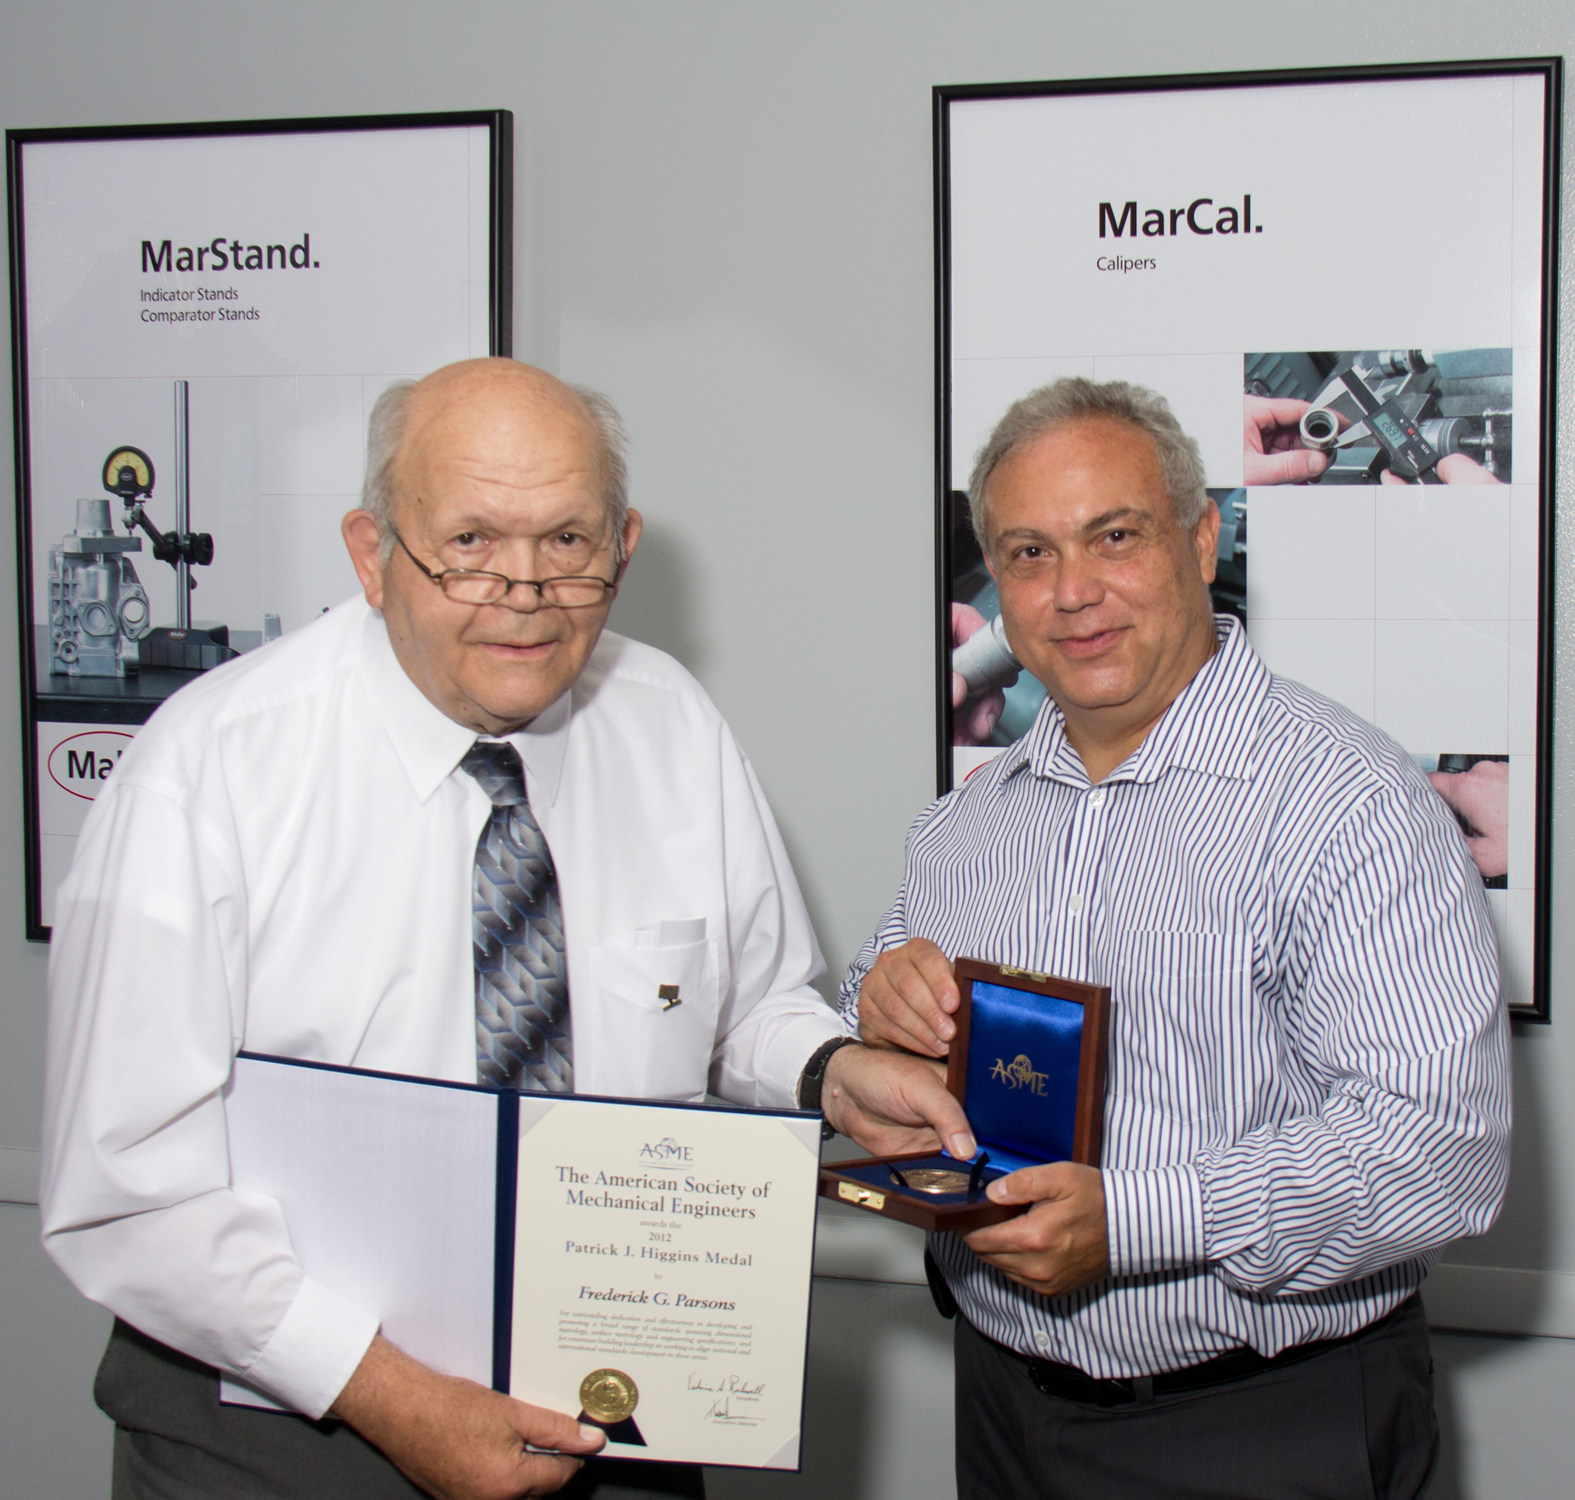 In a ceremony at the headquarters of Mahr Federal, long-time employee Frederick G. Parsons (left) is presented with the Patrick Higgins Medal by ASME's Steve Weinman in recognition for outstanding dedication and effectiveness in developing and promoting a broad range of standards in dimensional metrology, surface metrology and engineering specifications.(Click on photo to enlarge it)